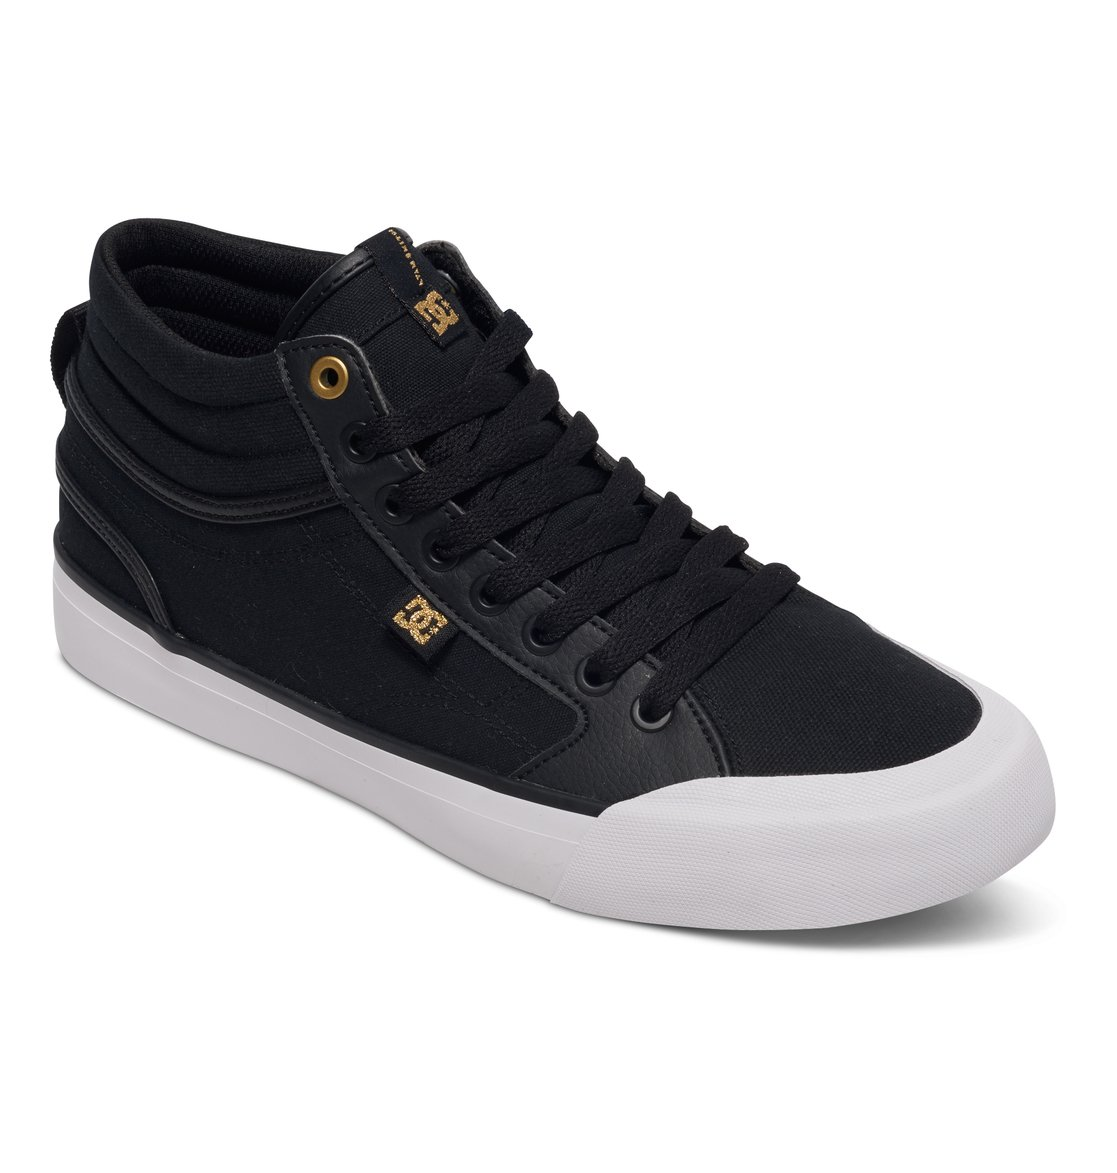 Hi Evan Smith Hombre Shoes Zapatillas Para Adys300246Dc Altas VGULMpqSz